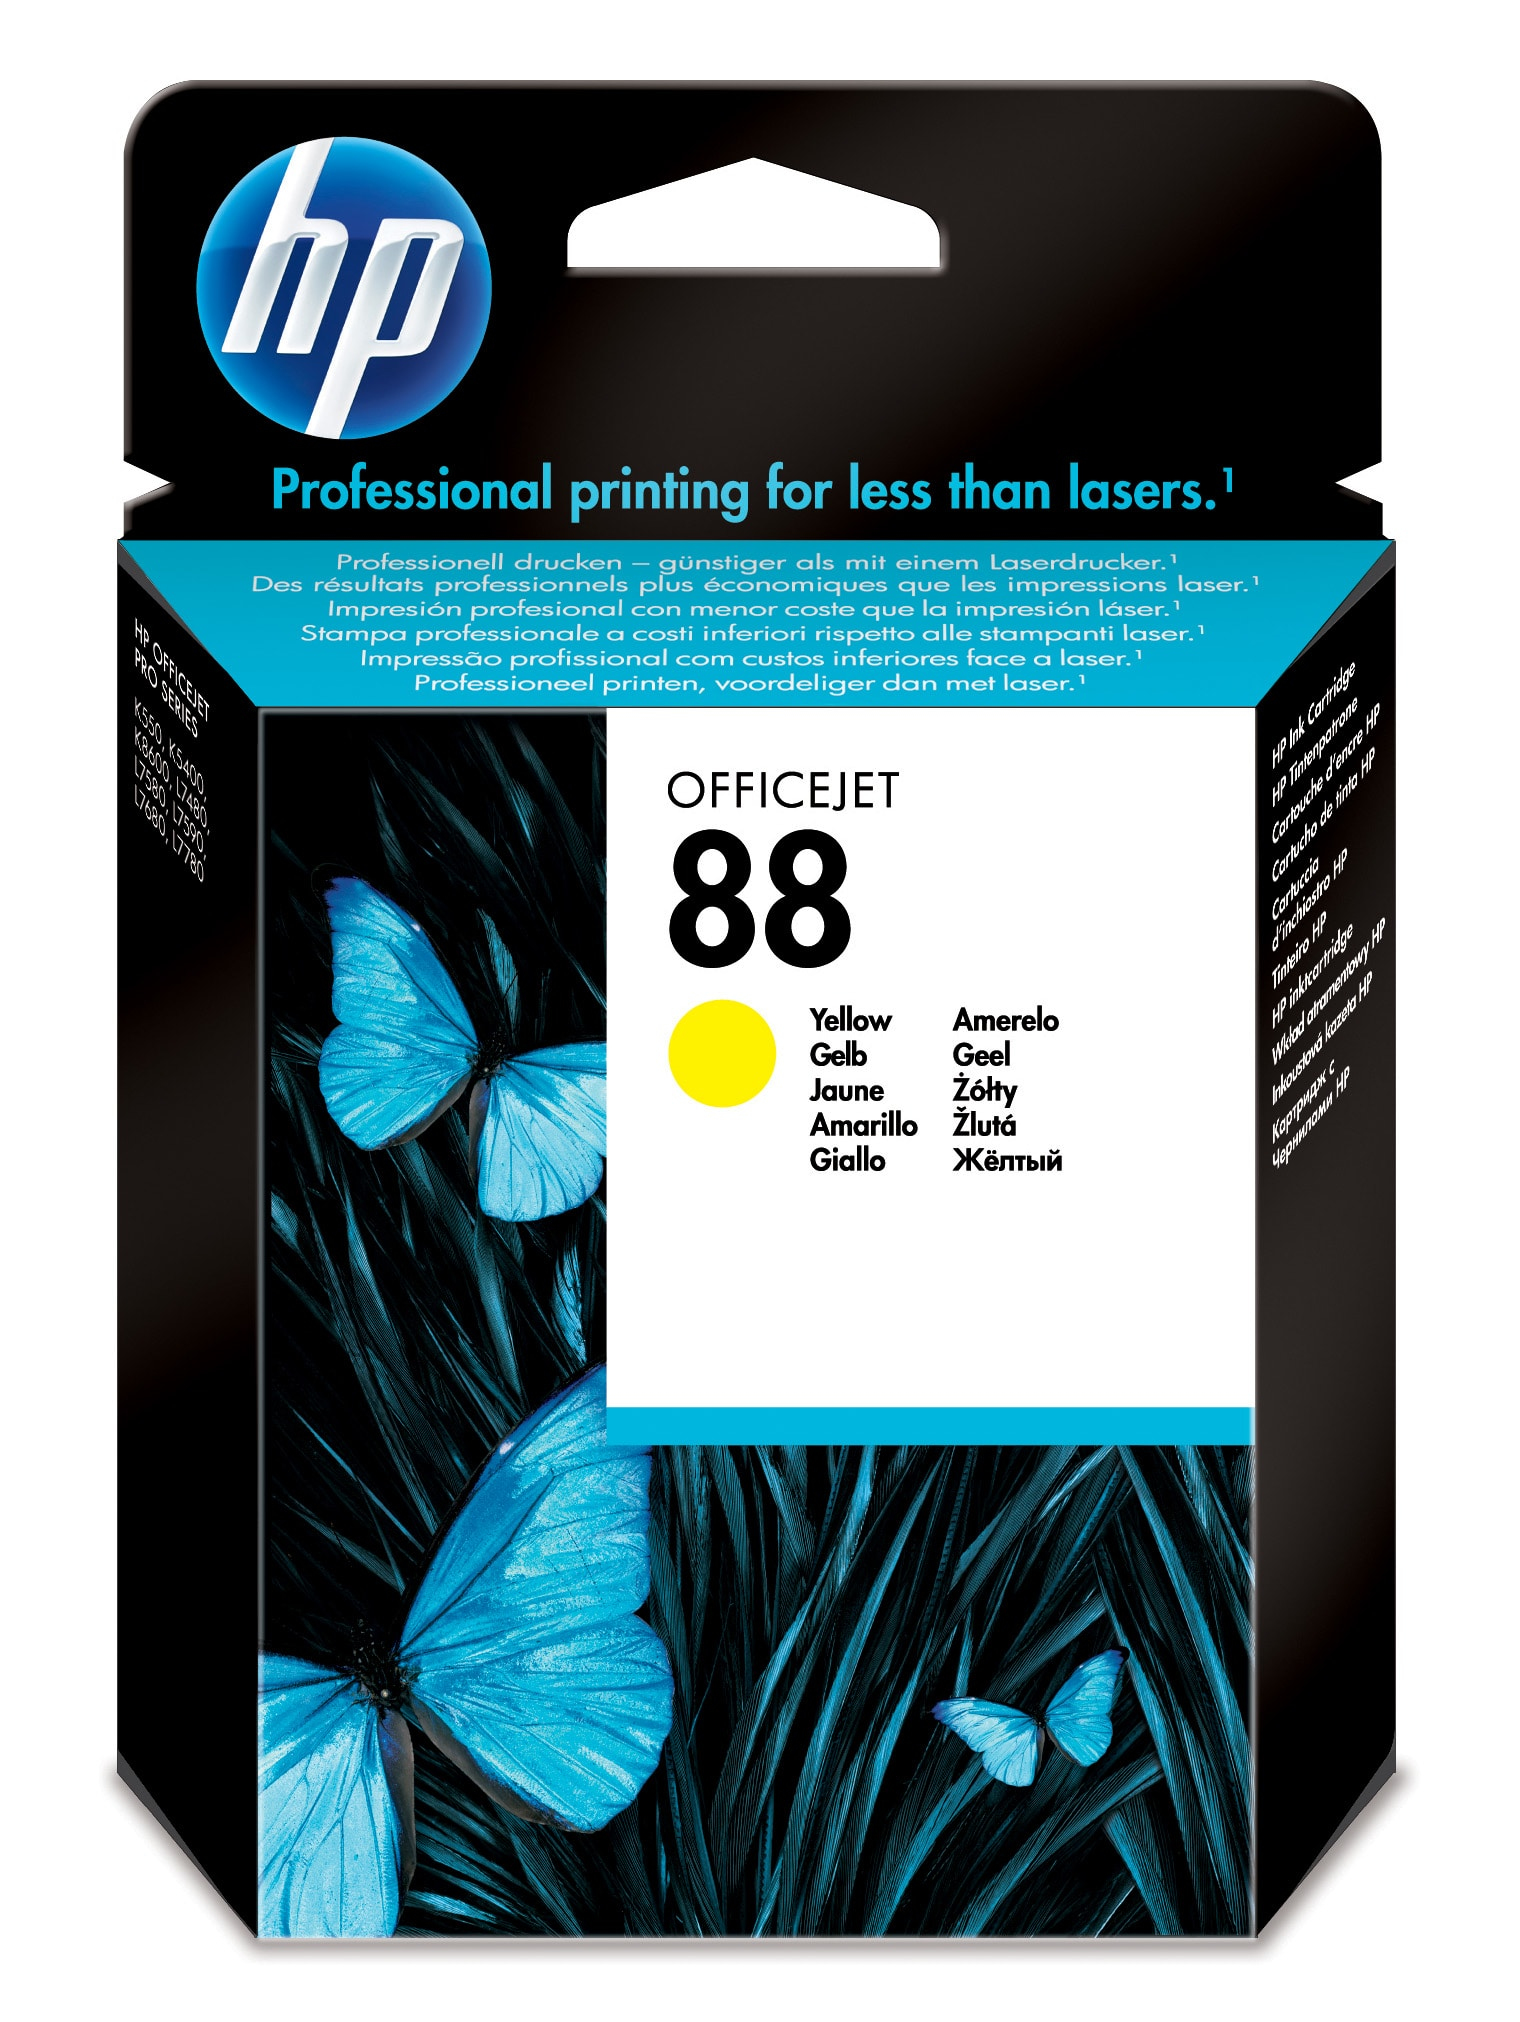 Remanufactured HP C9388AE (88) Yellow Ink Cartridge C9388AE - rem01